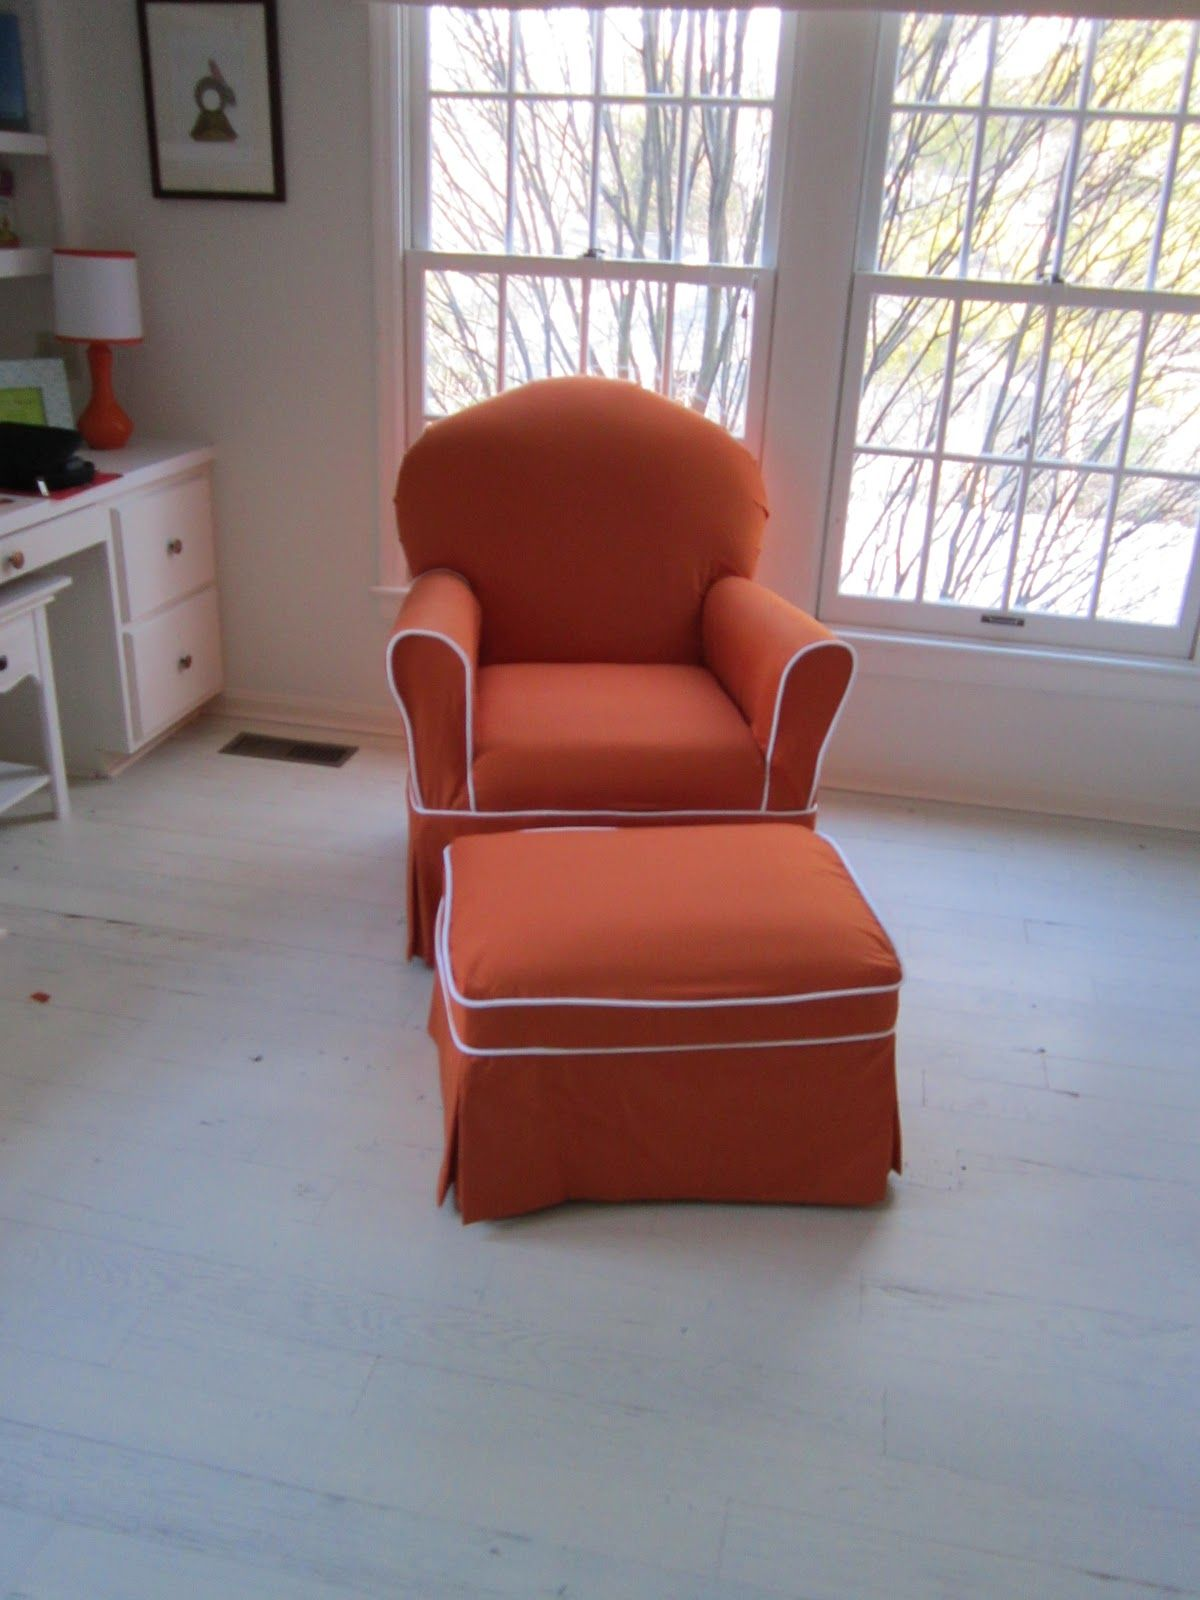 Custom Made Slipcovers (With images) Slipcovers, Wing chair